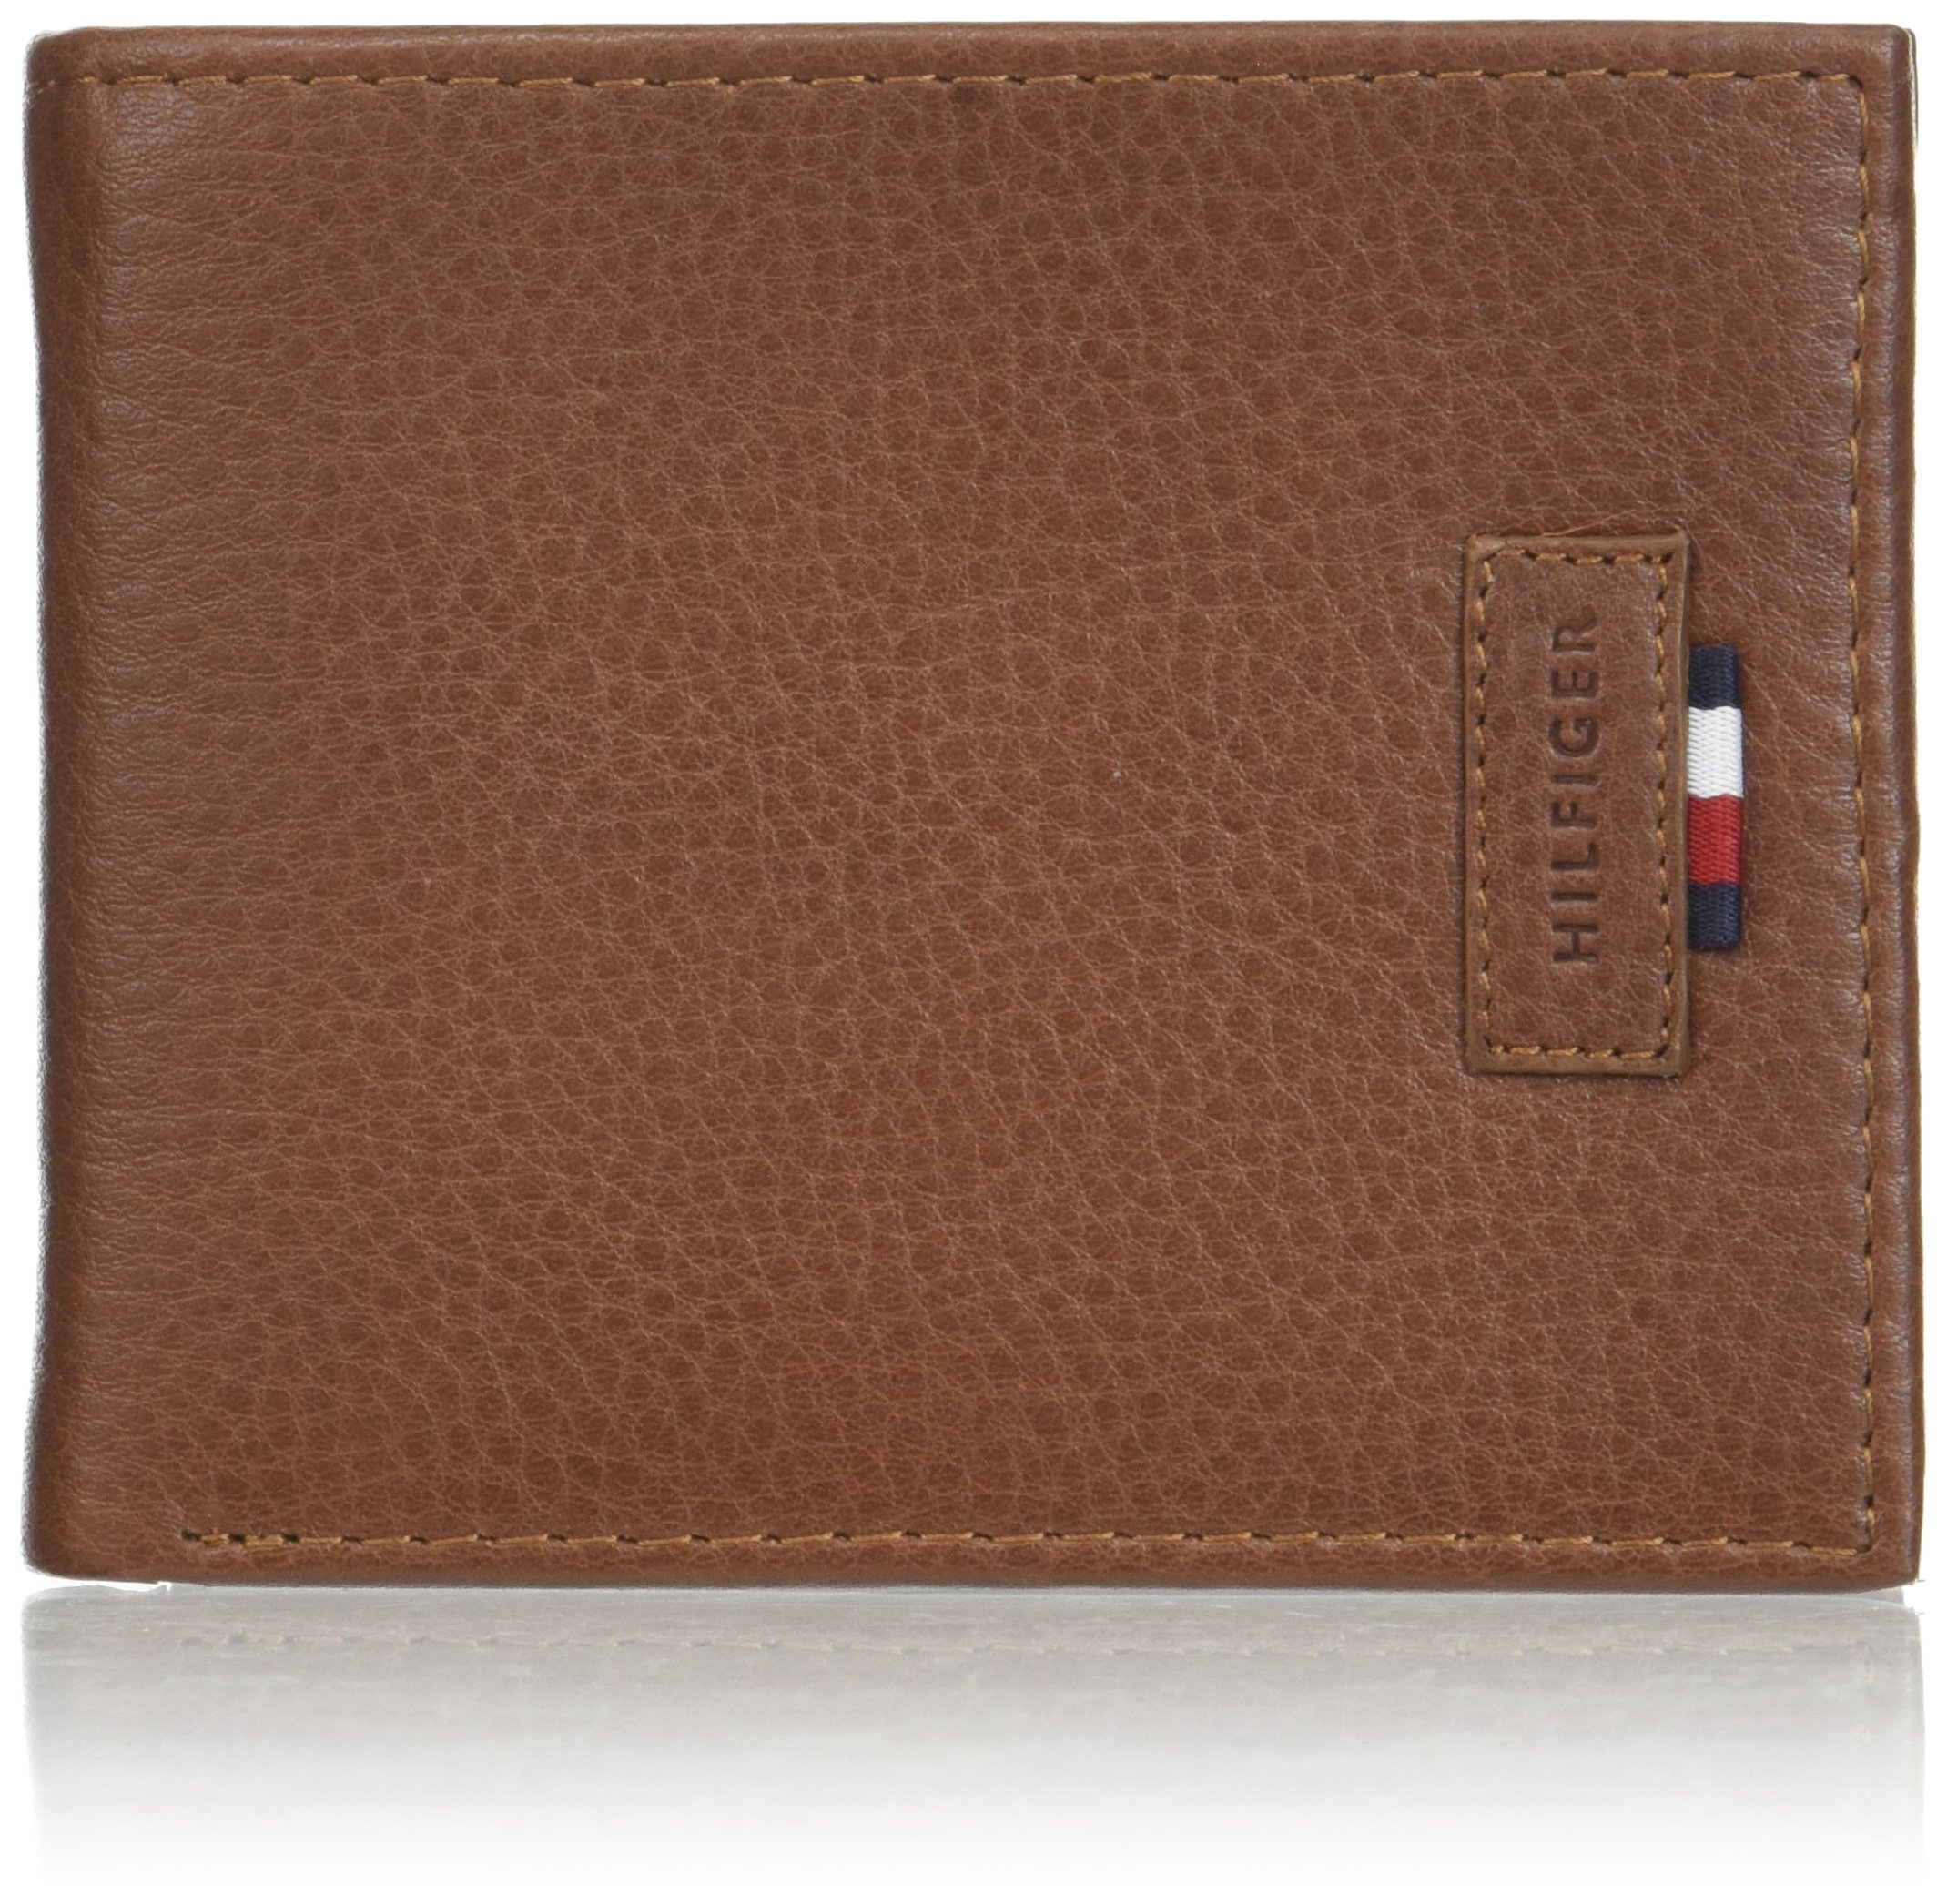 Tommy Hilfiger Men's Rfid Blocking 100% Leather Passcase Wallet, Tan, One Size